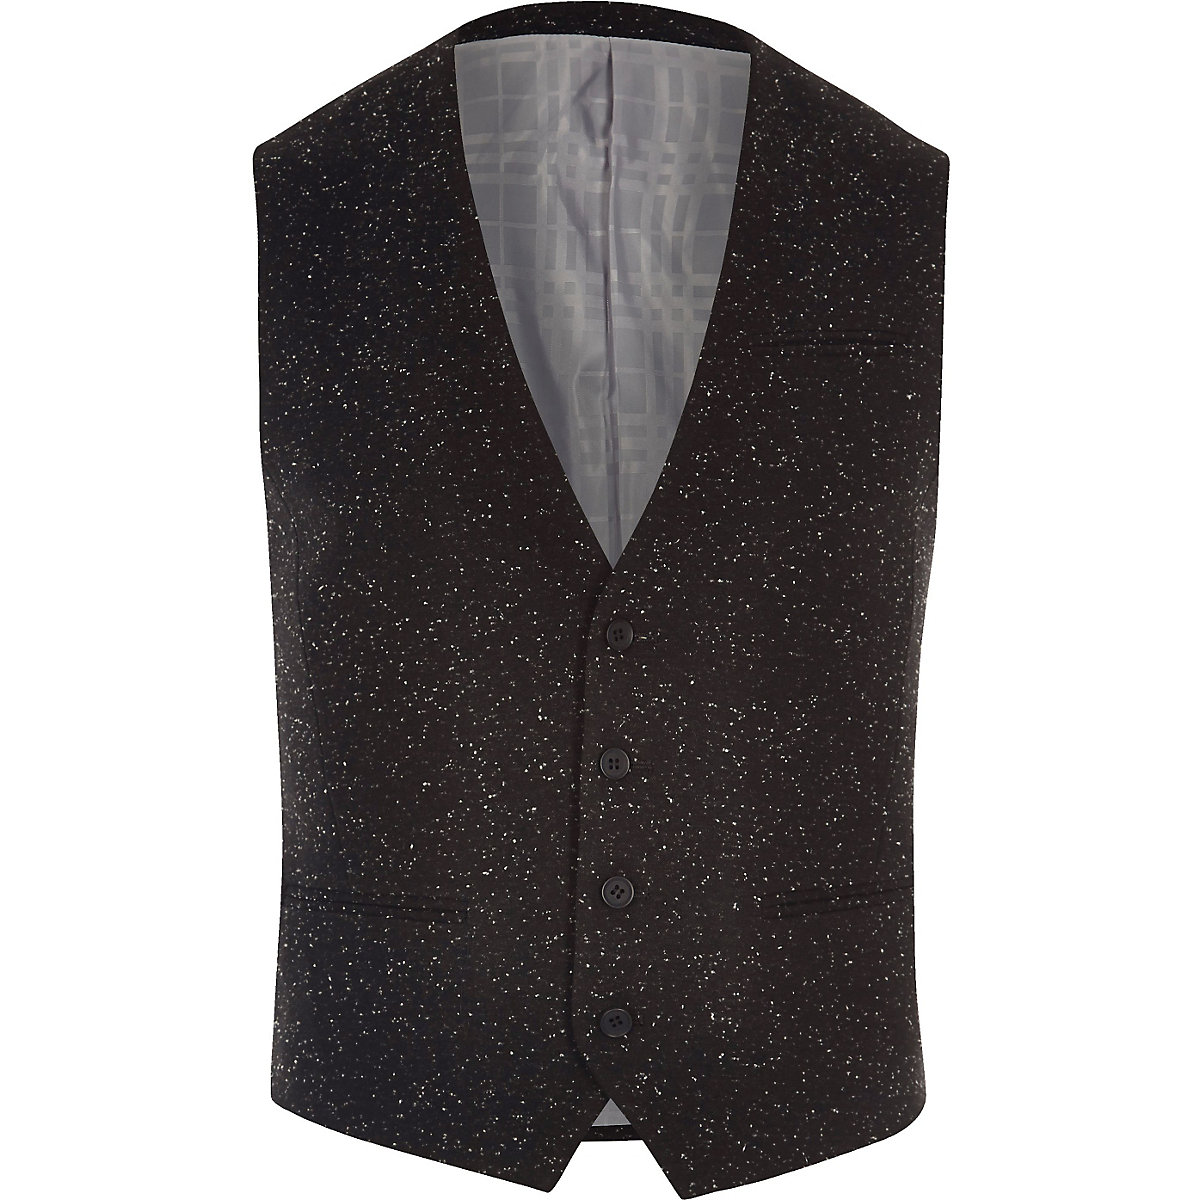 Black textured Vito vest